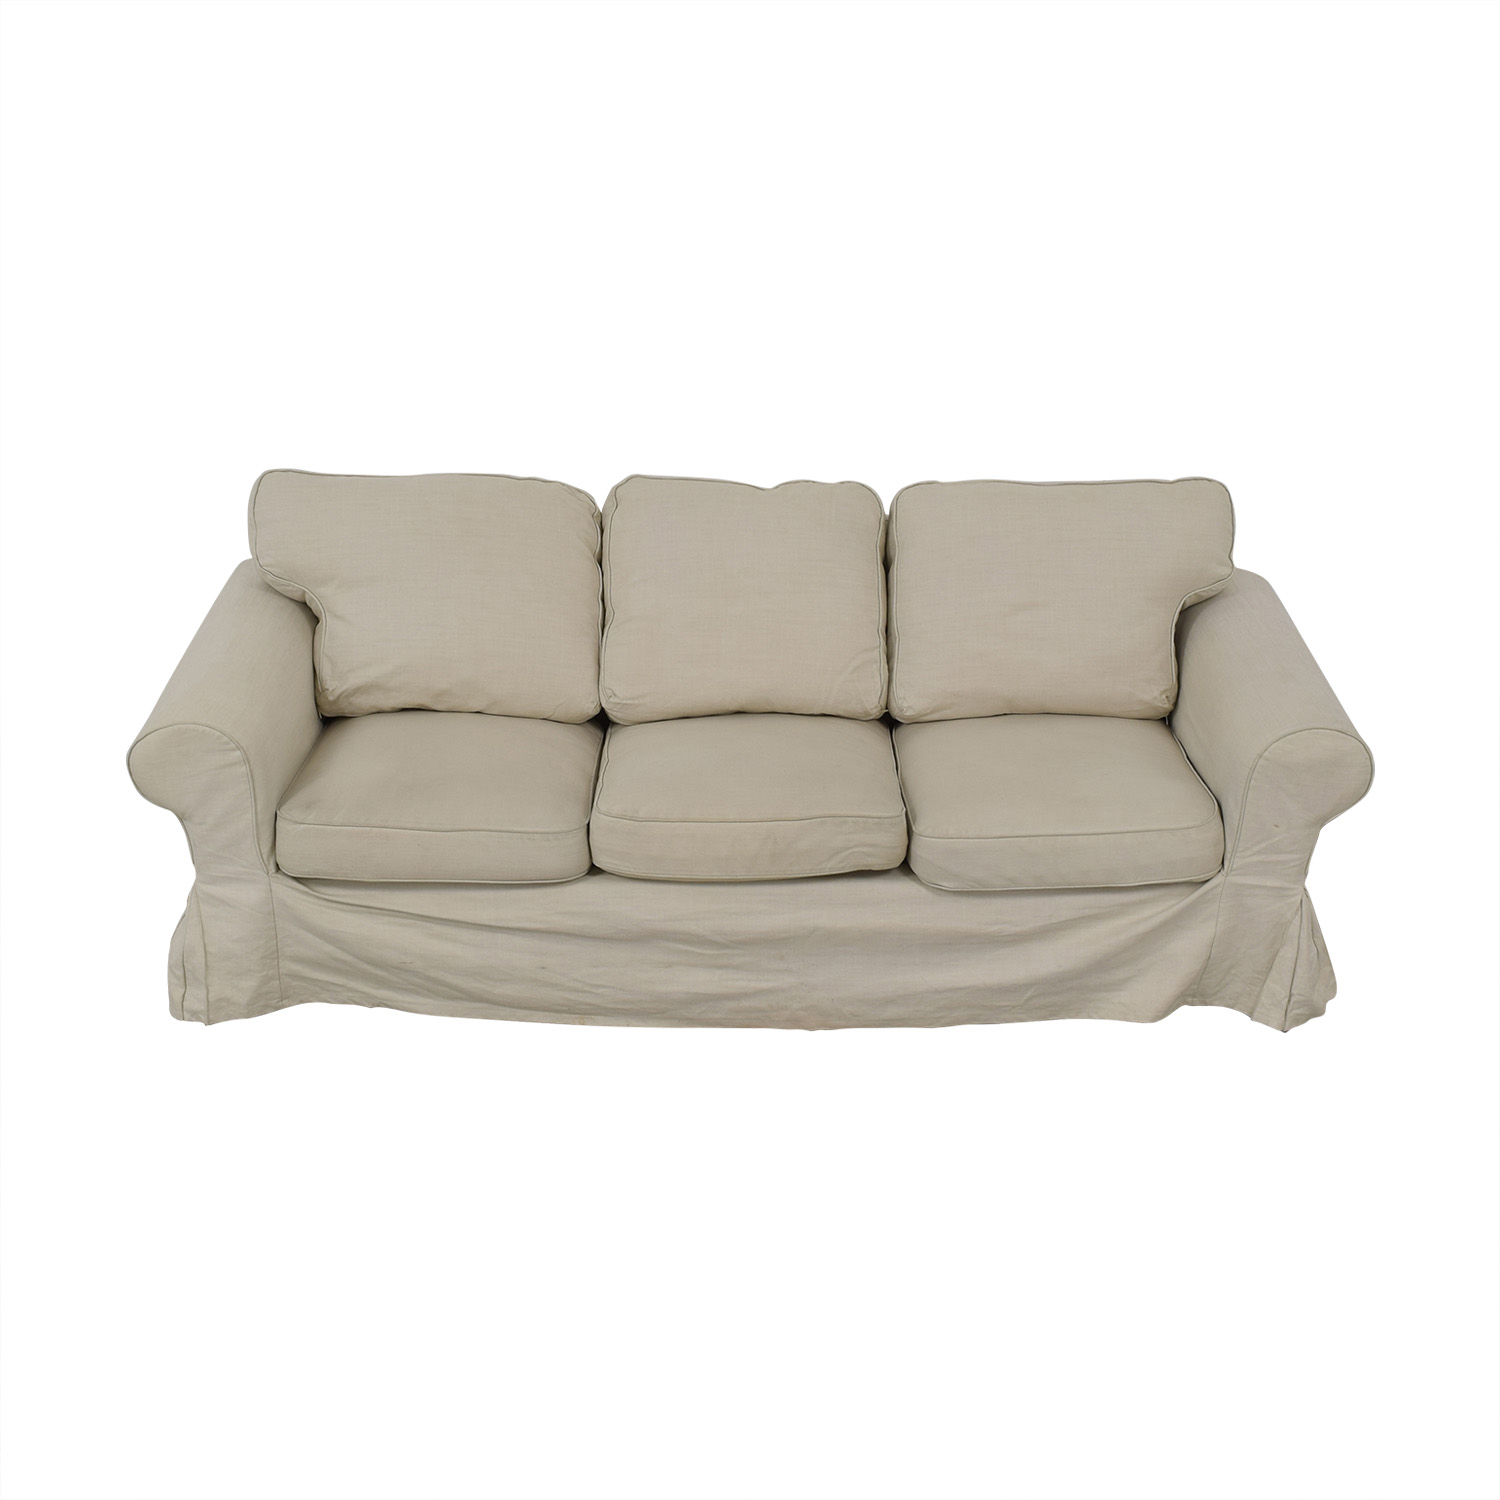 IKEA IKEA Ektorp Lofallet Beige Three-Cushion Sofa price